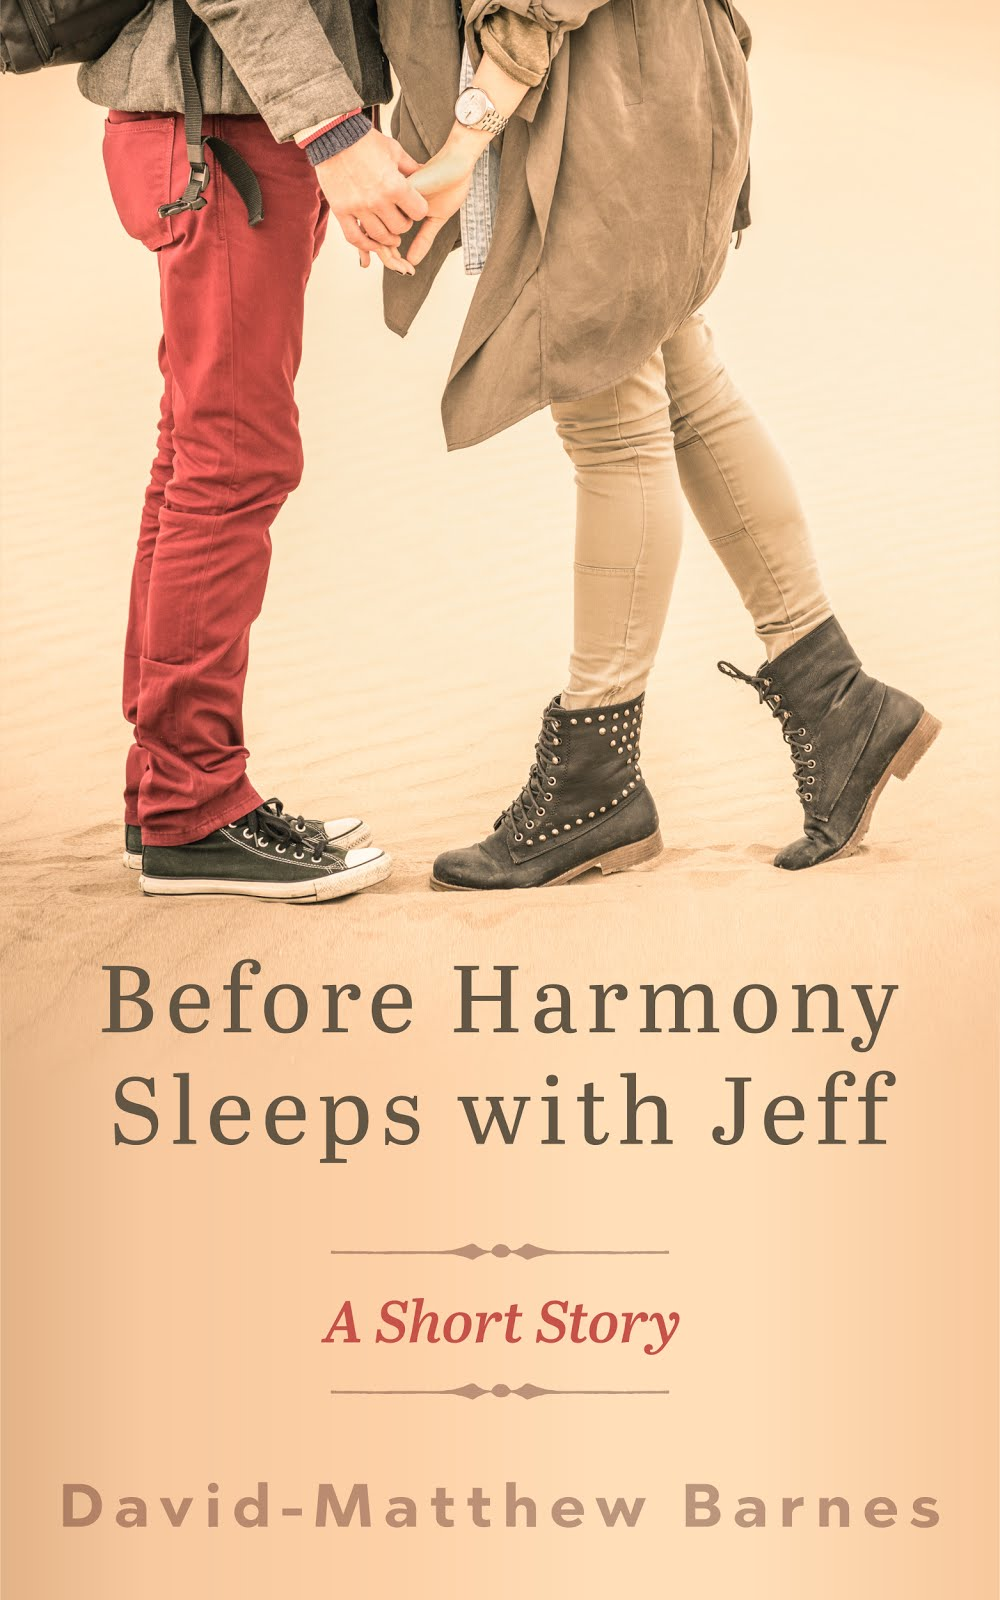 BEFORE HARMONY SLEEPS WITH JEFF